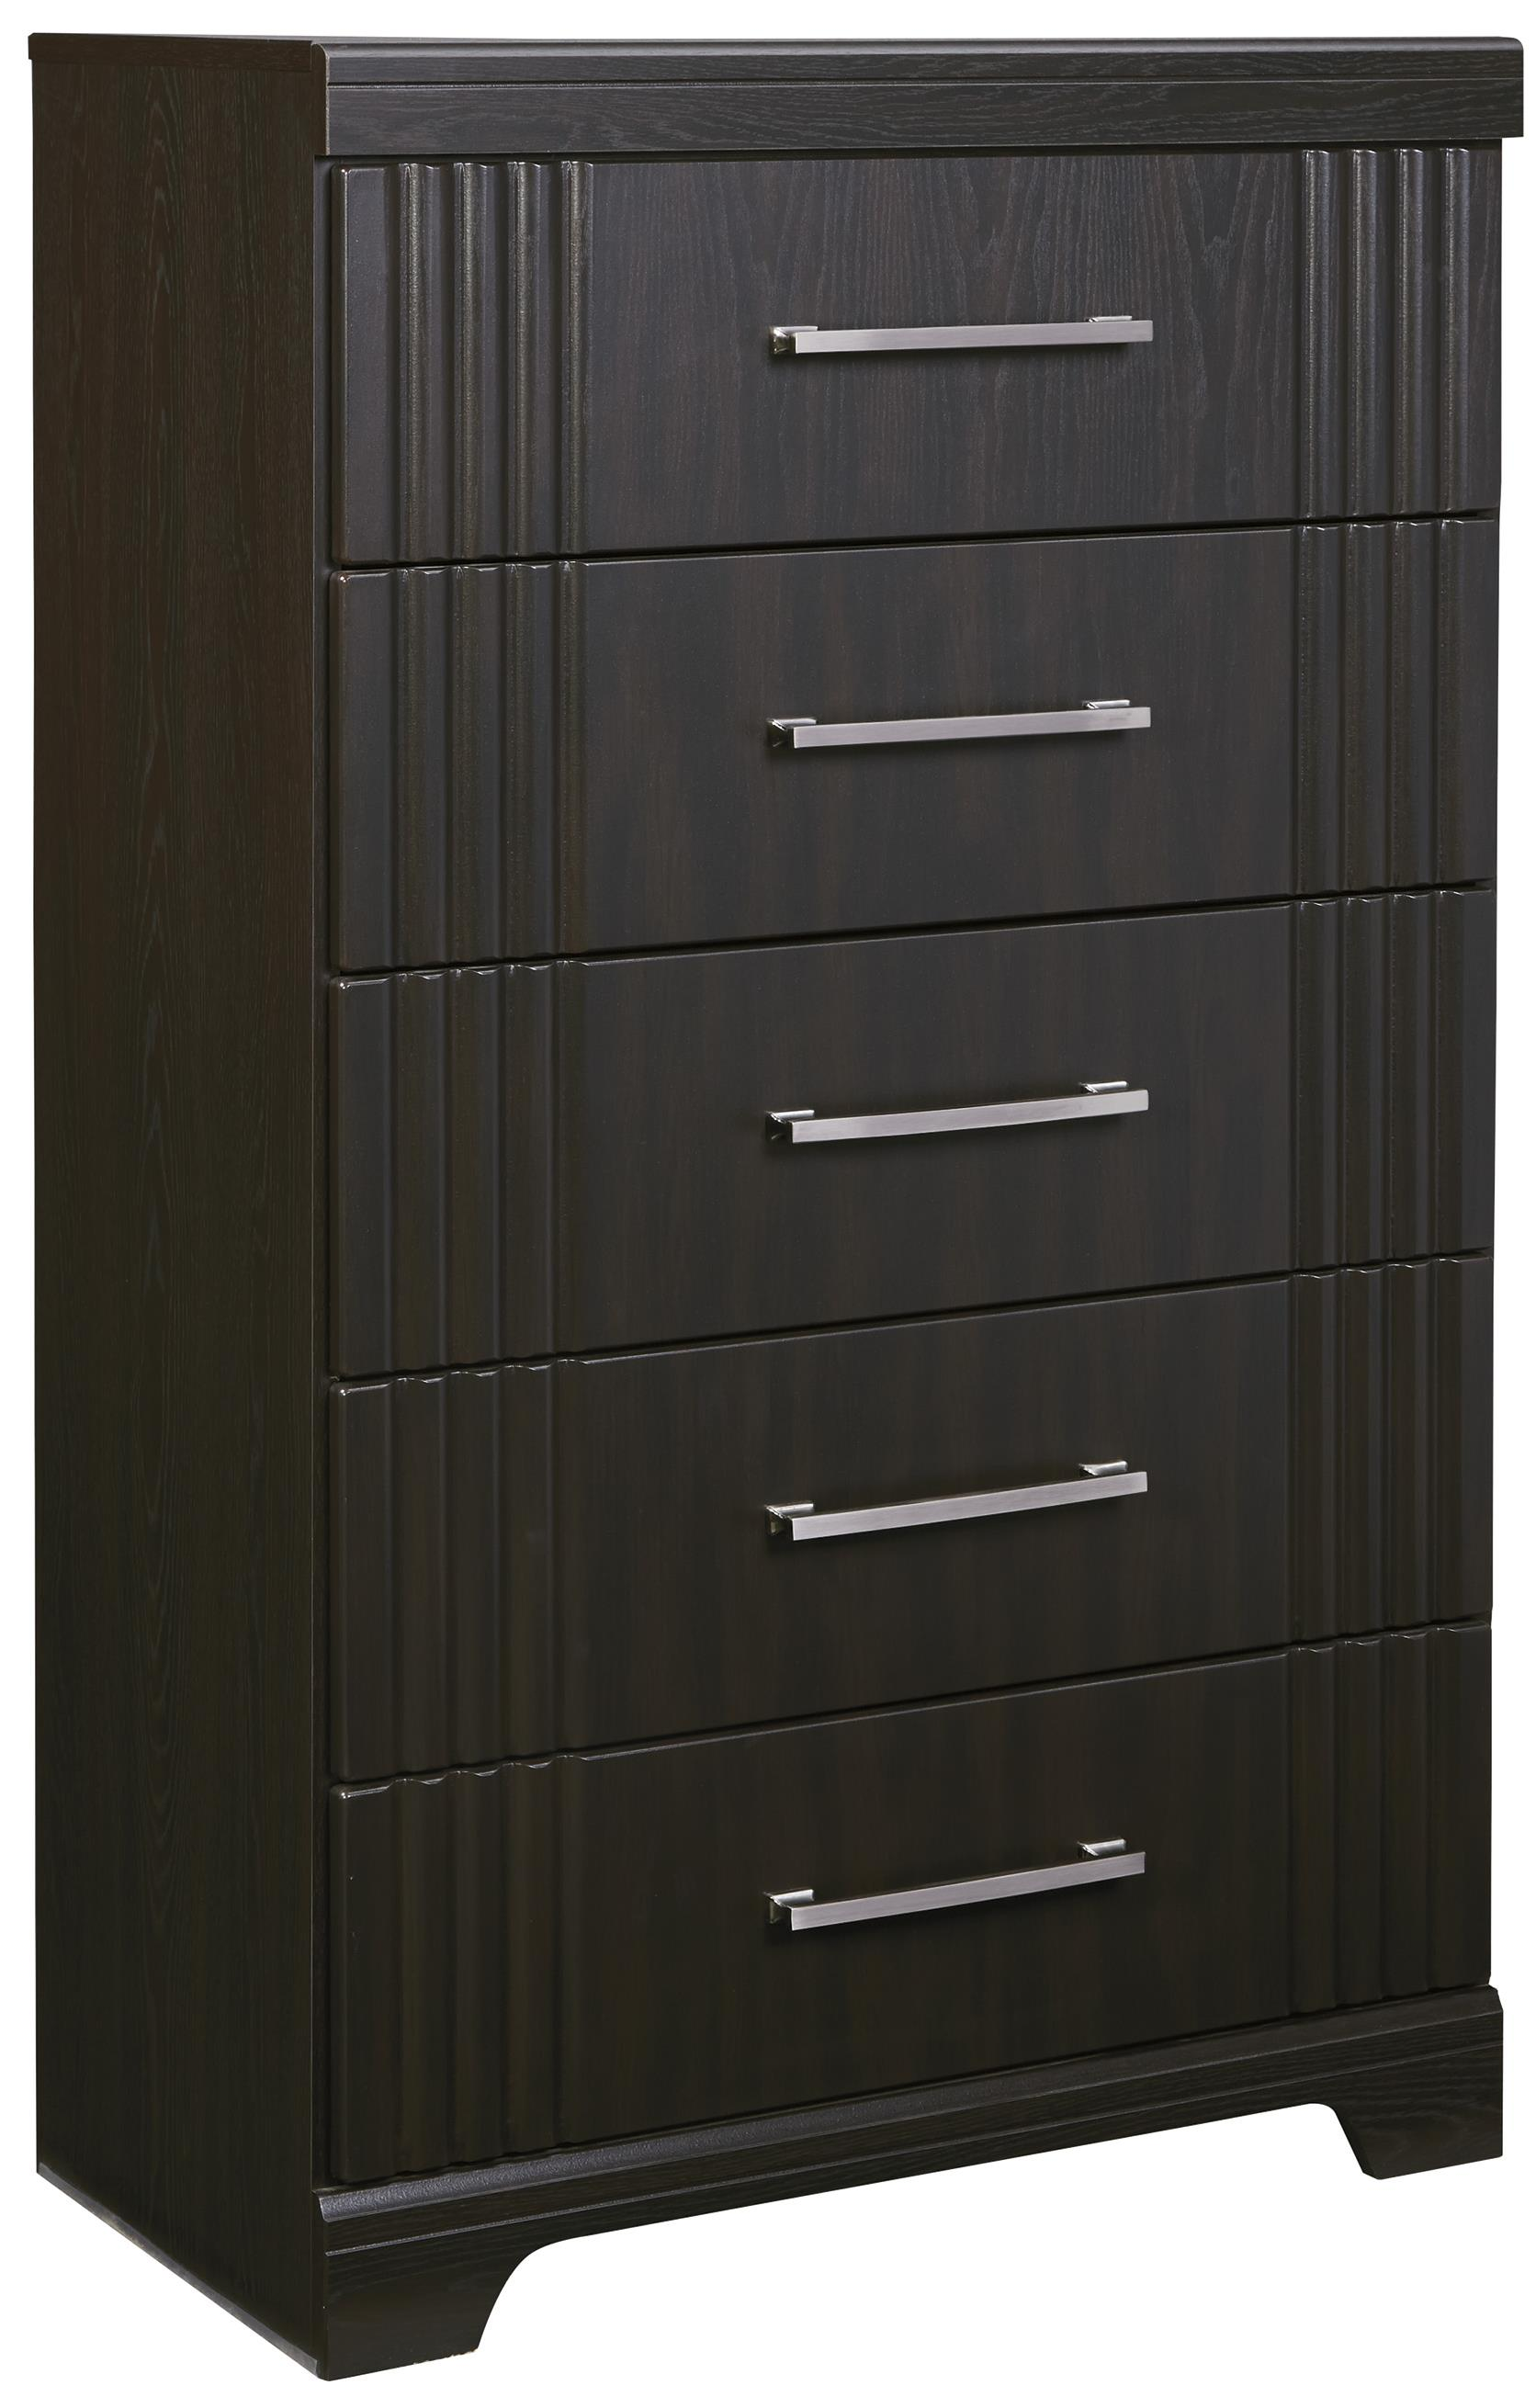 Signature Design by Ashley Tadlyn Five Drawer Chest - Item Number: B146-46